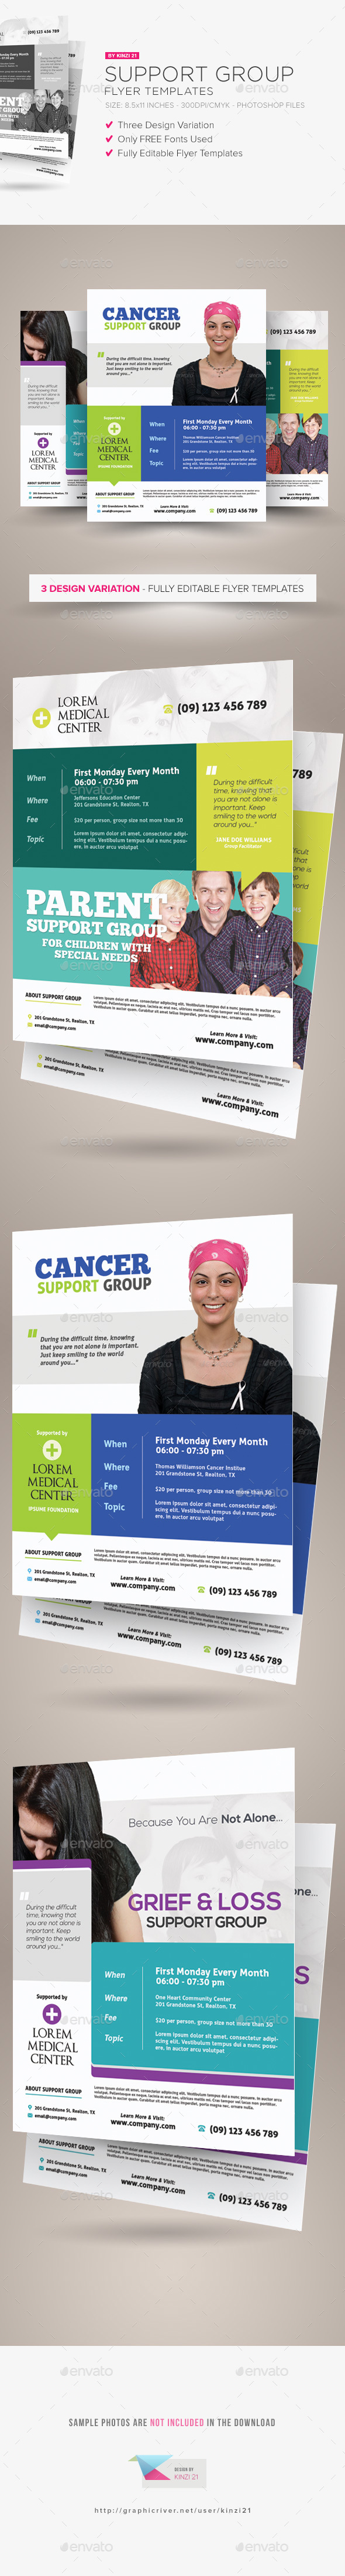 Support Group Flyer Templates - Corporate Flyers